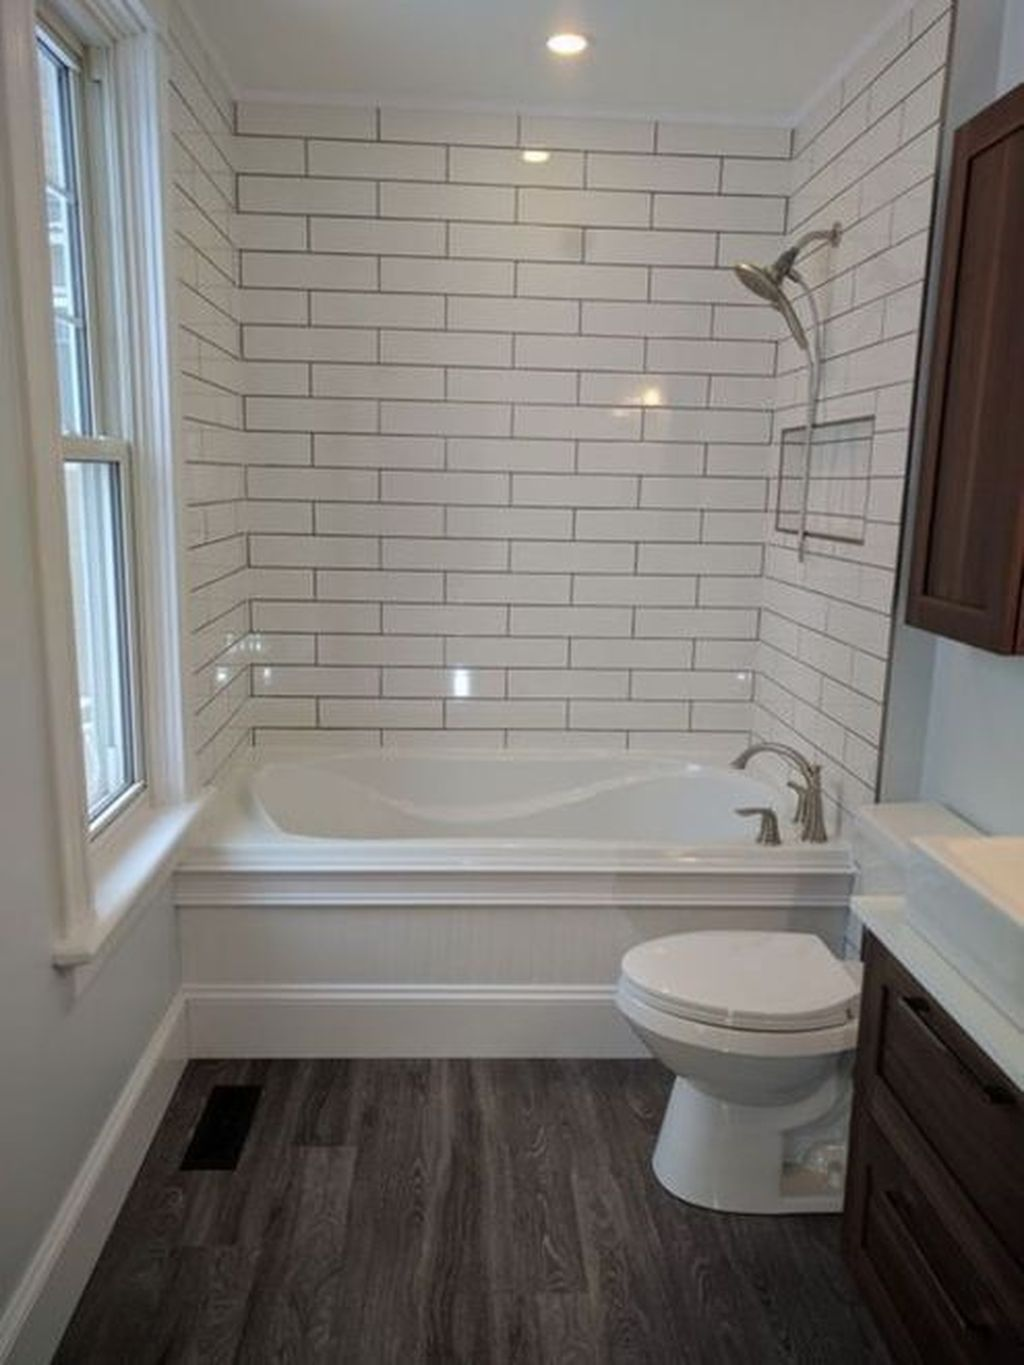 Top 16 Awesome Small Bathrooms On A Budget - Creative Maxx ...